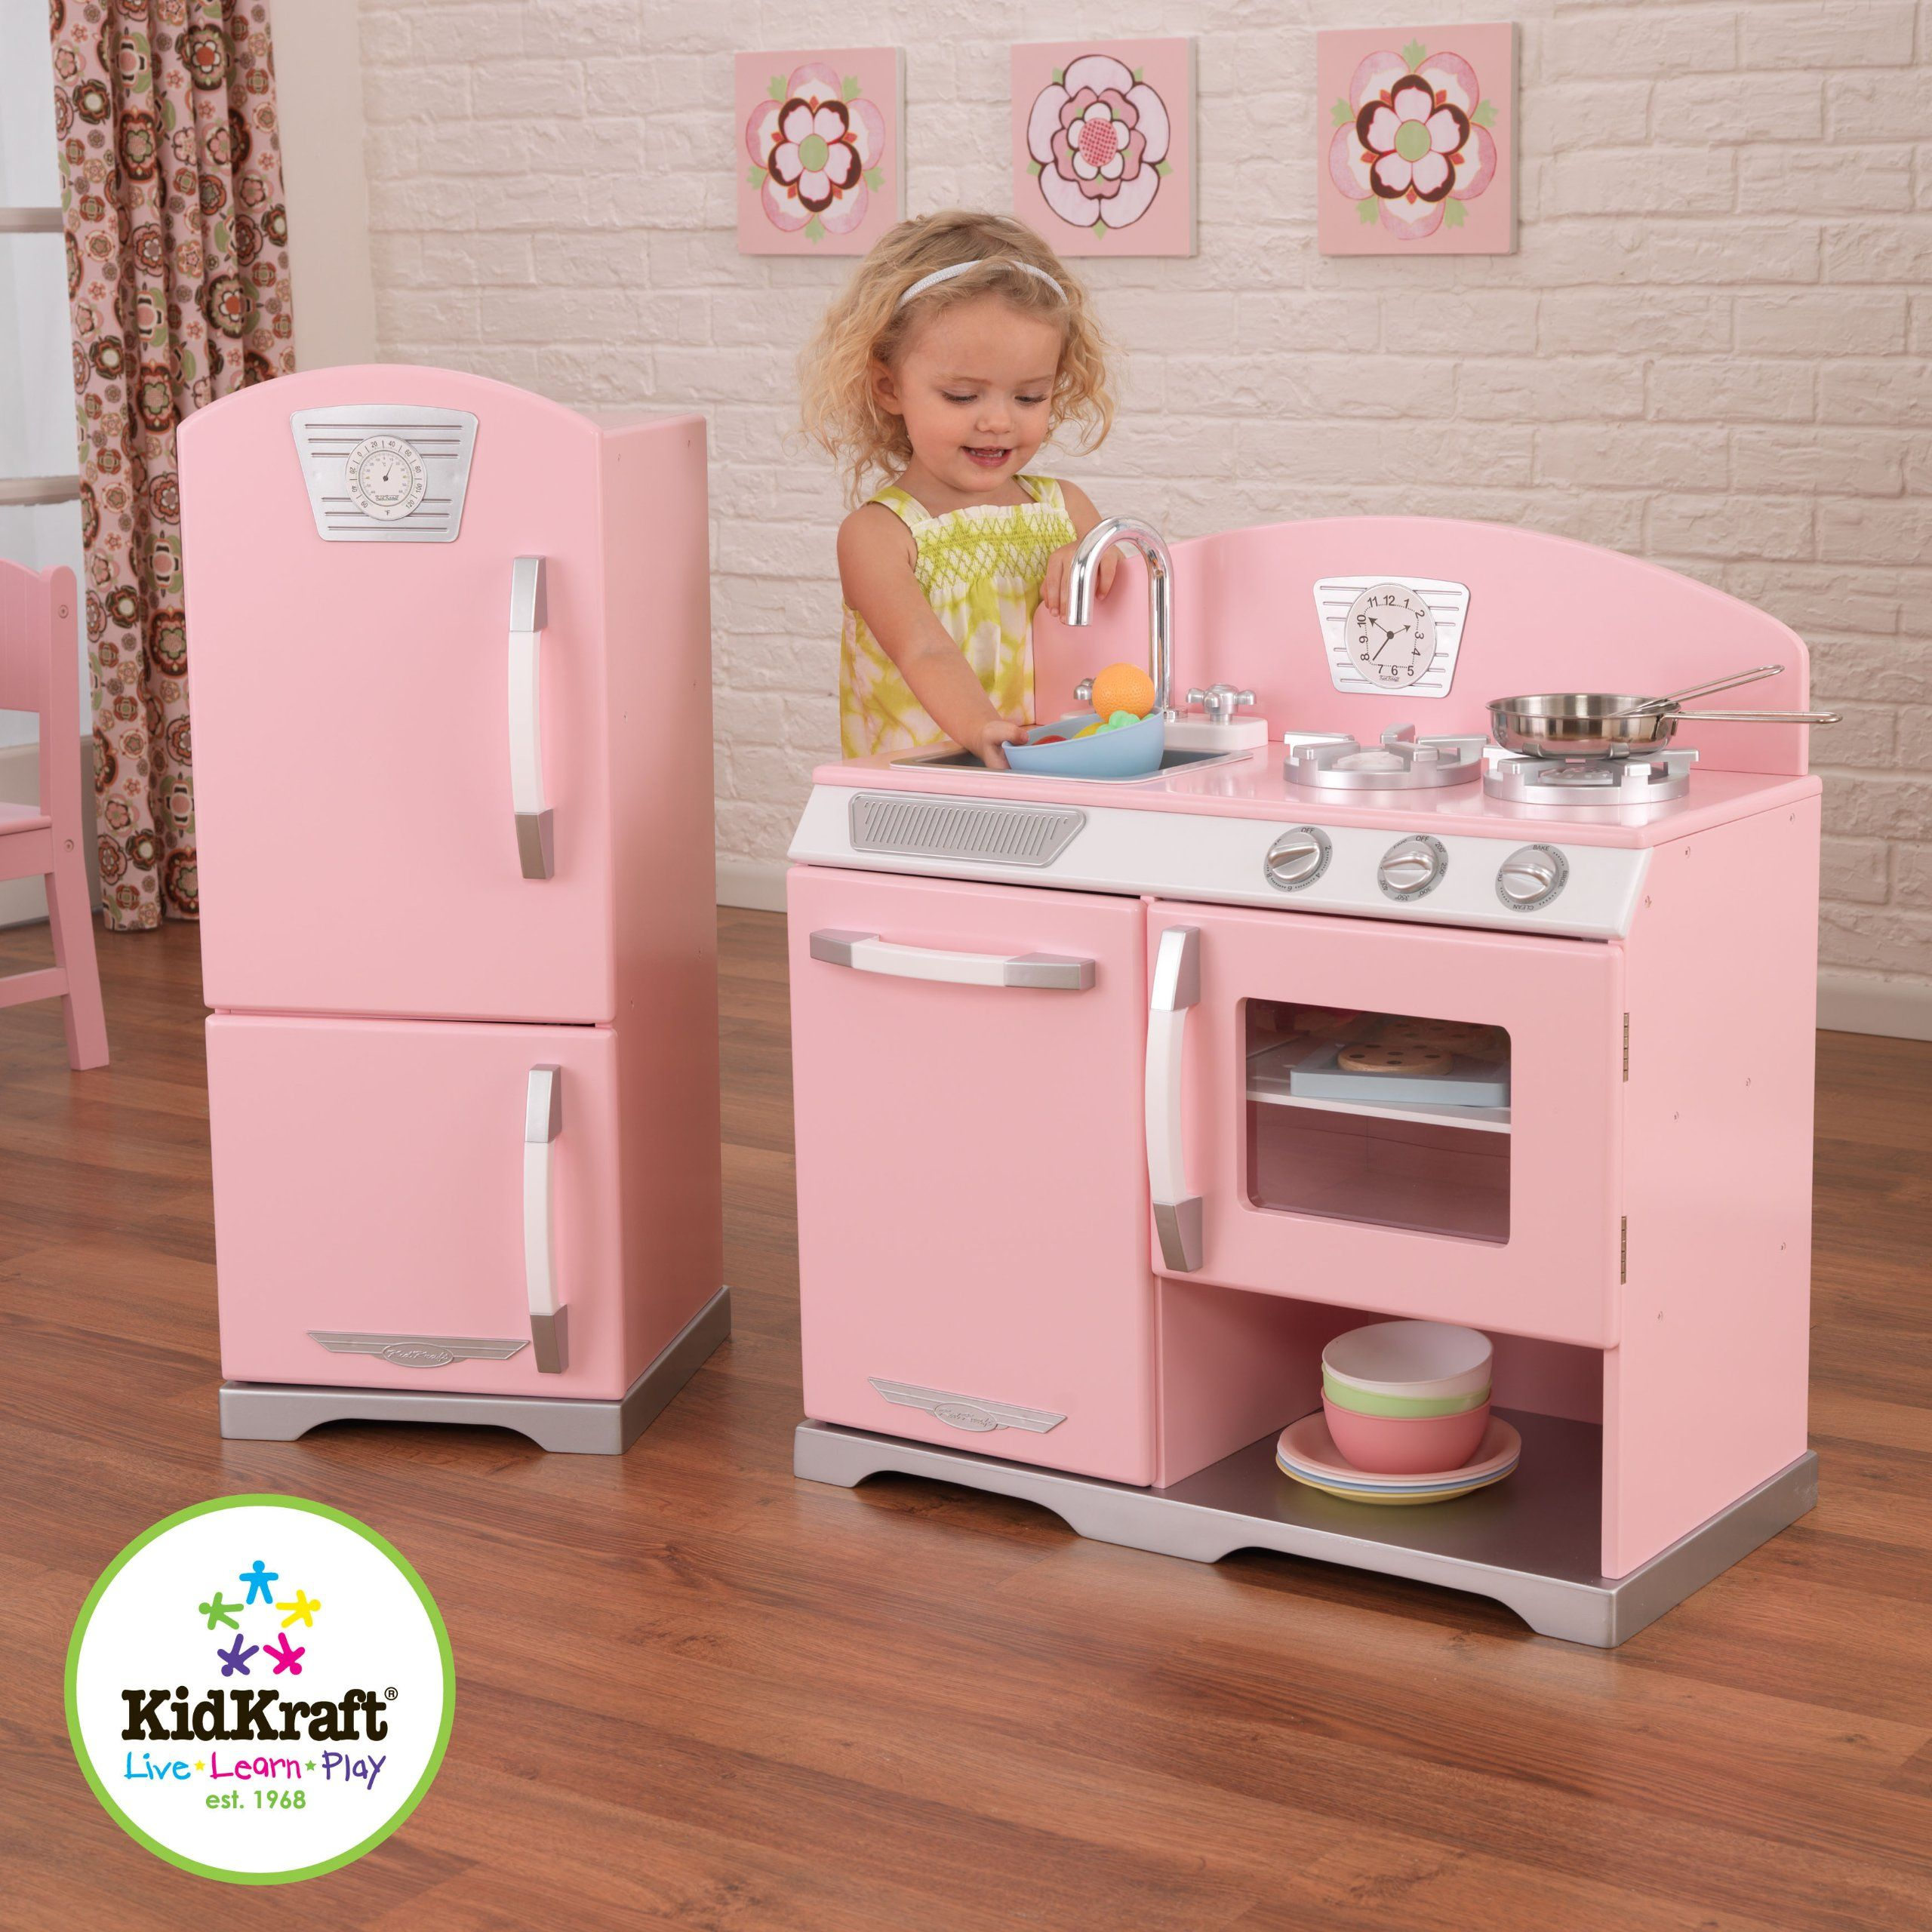 Kidkraft Küchen Amazon.com: Kidkraft Retro Kitchen And Refrigerator In